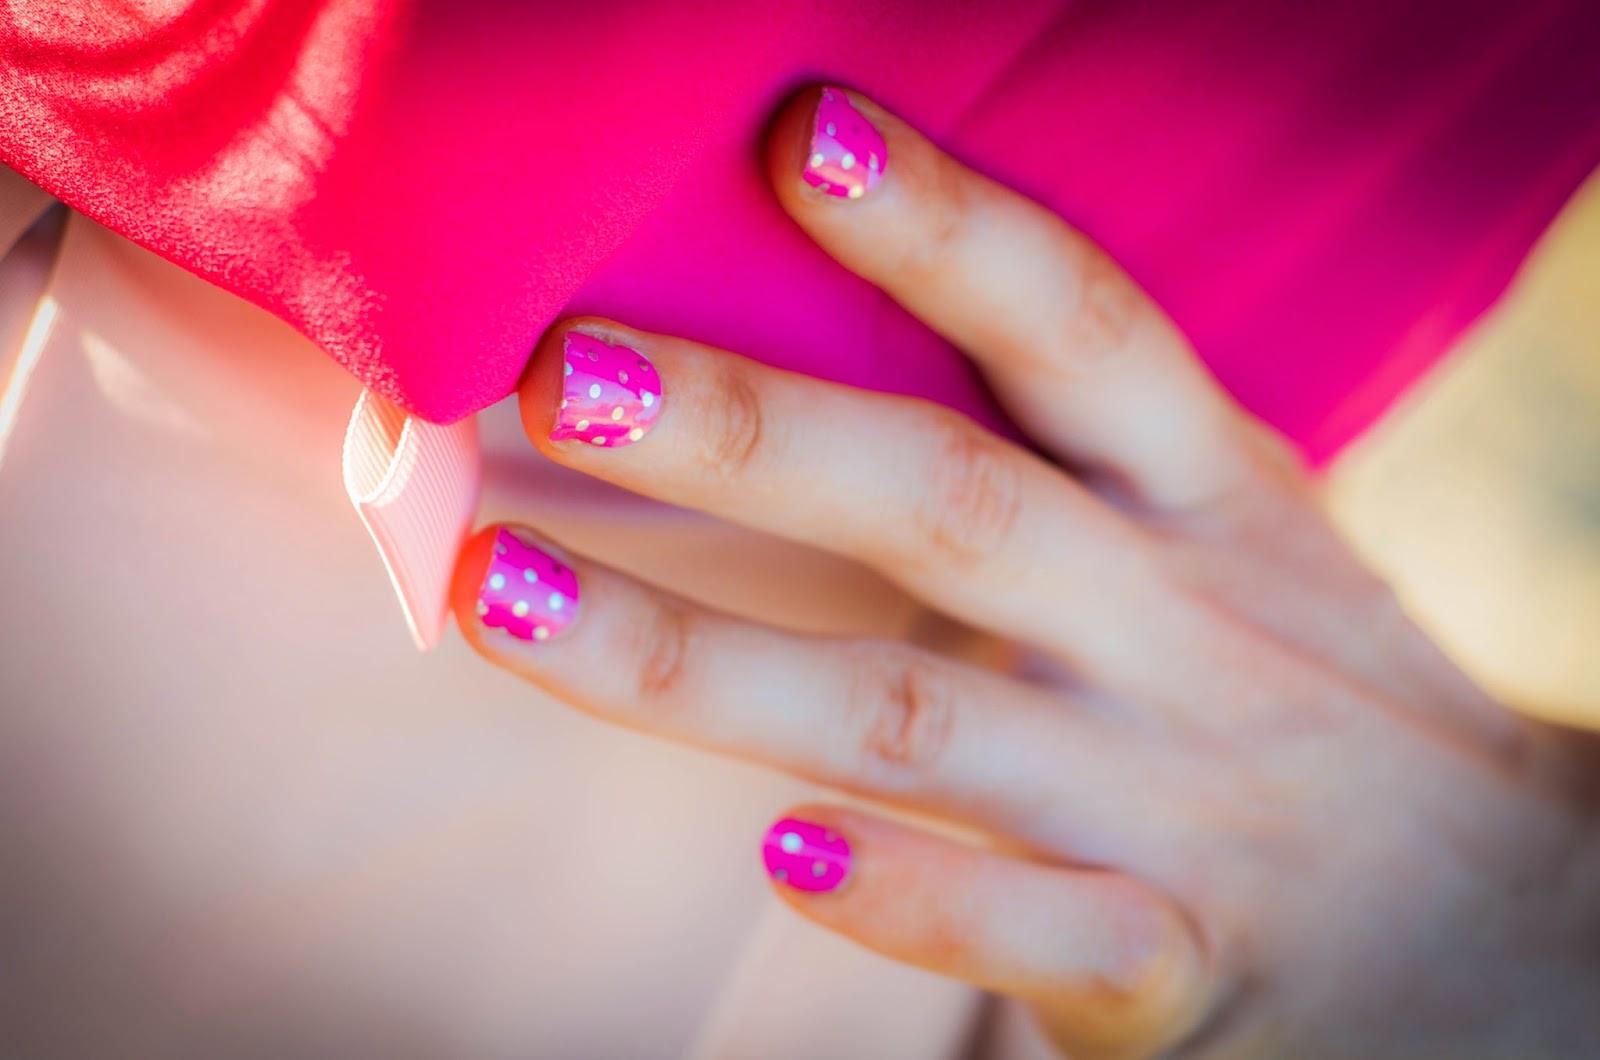 jamberry, jamberry nails, nail art, polka dotted nails, fresh manicure at home, manicure so easy, easy manicure at home, pretty nails, nails,